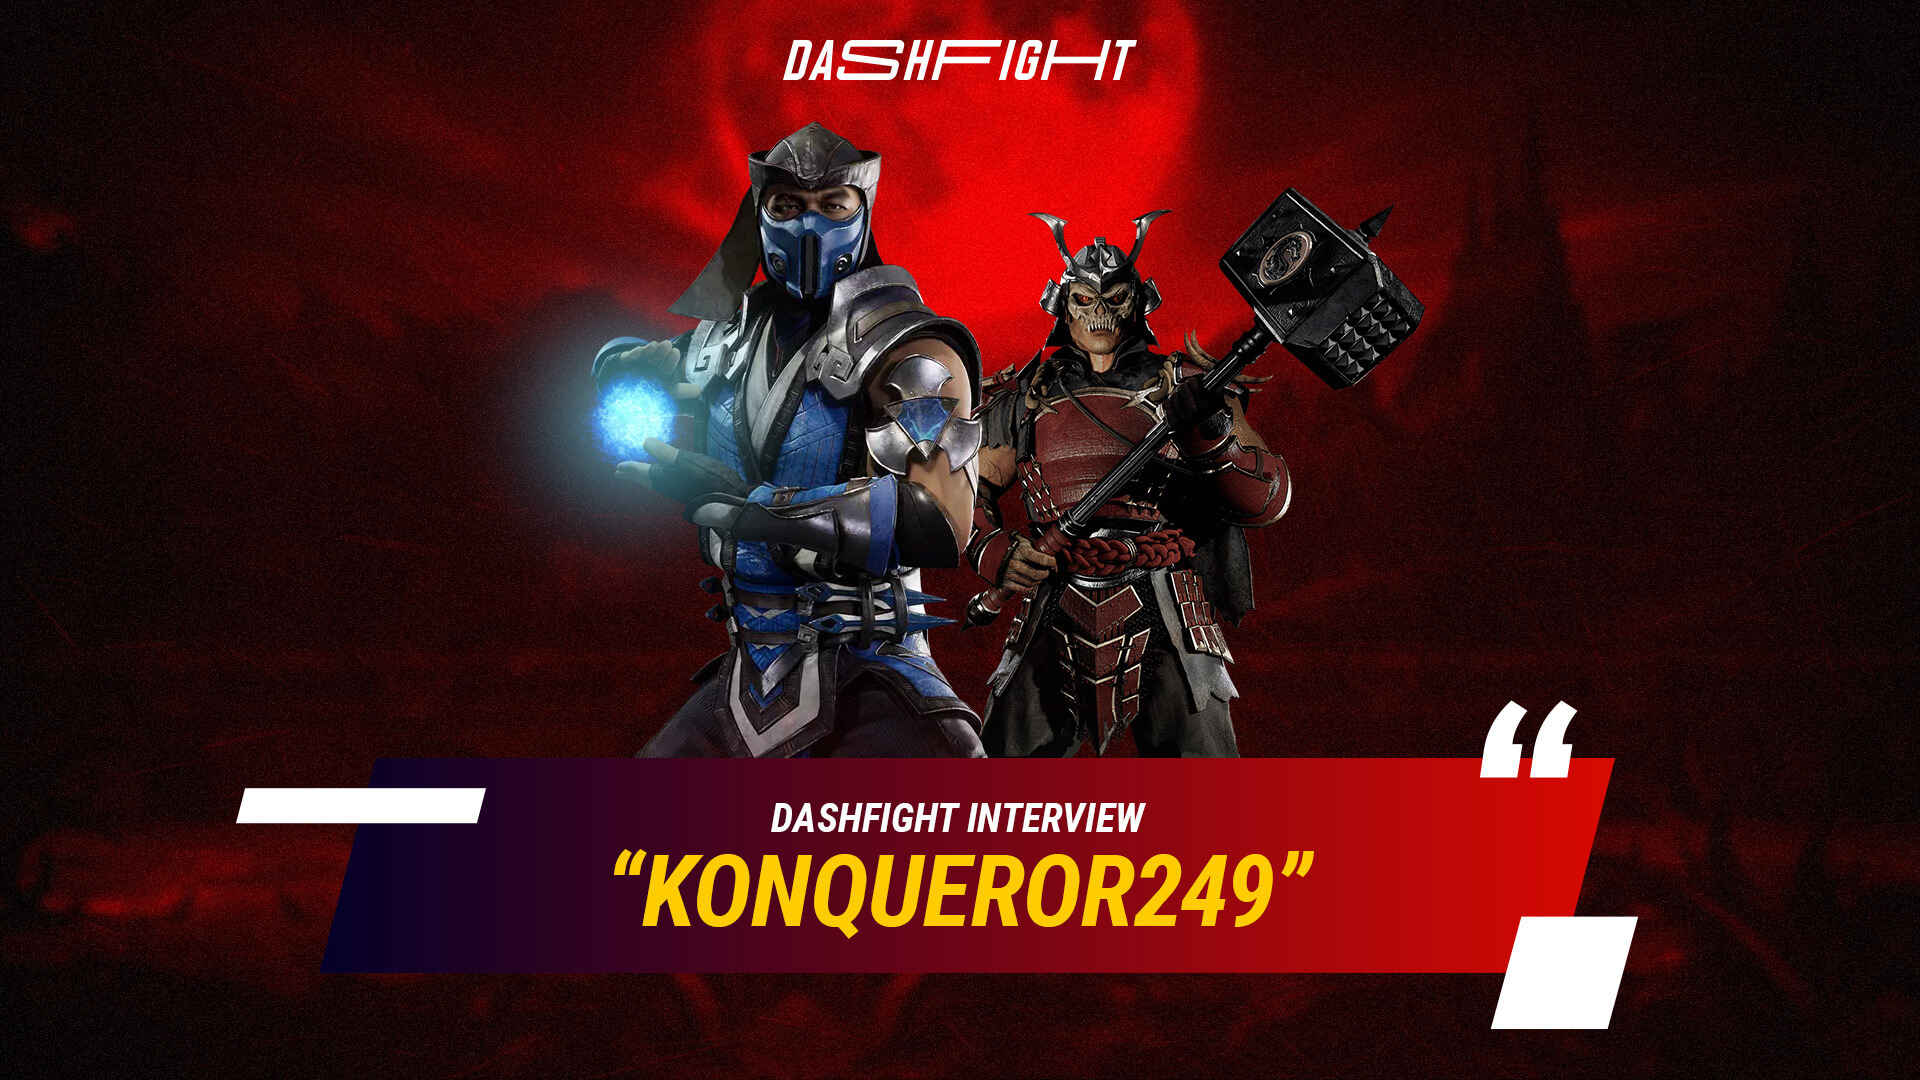 DF Interview: Konqueror249, the Best MK11 Player of Latin America